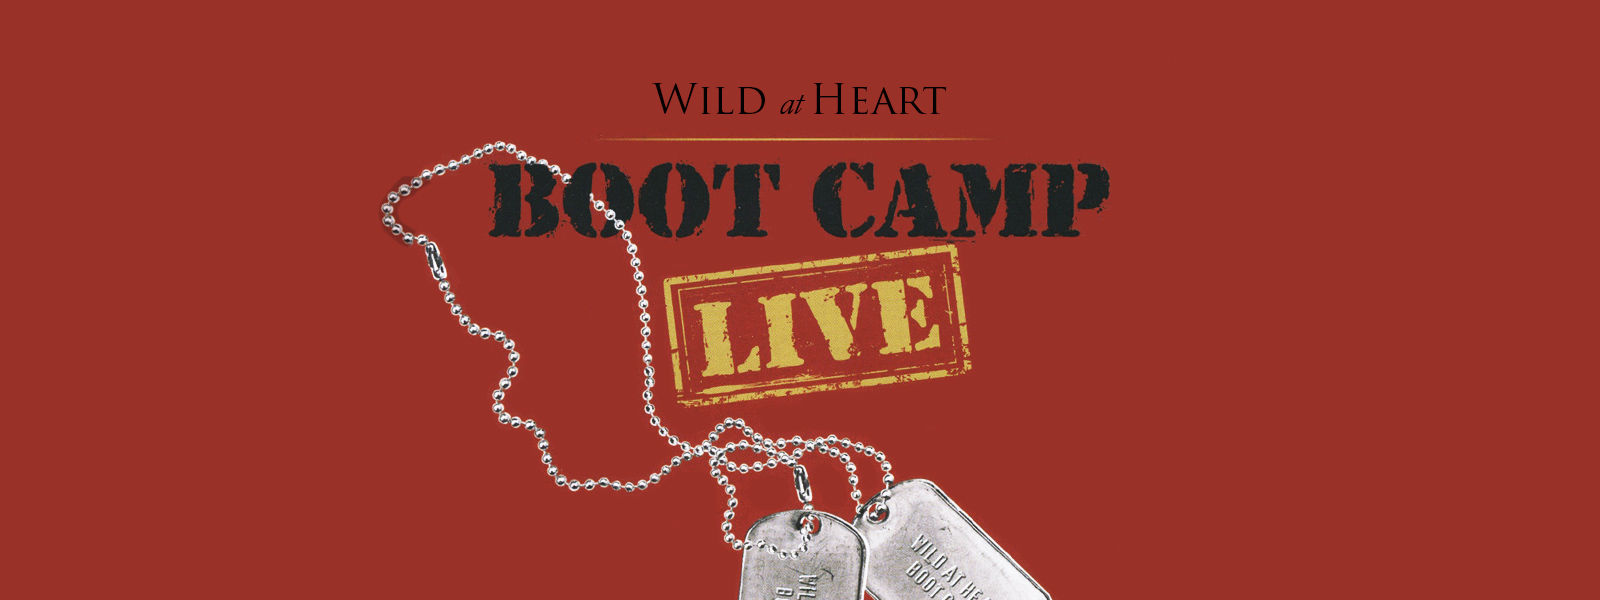 Wild at Heart: Boot Camp Live